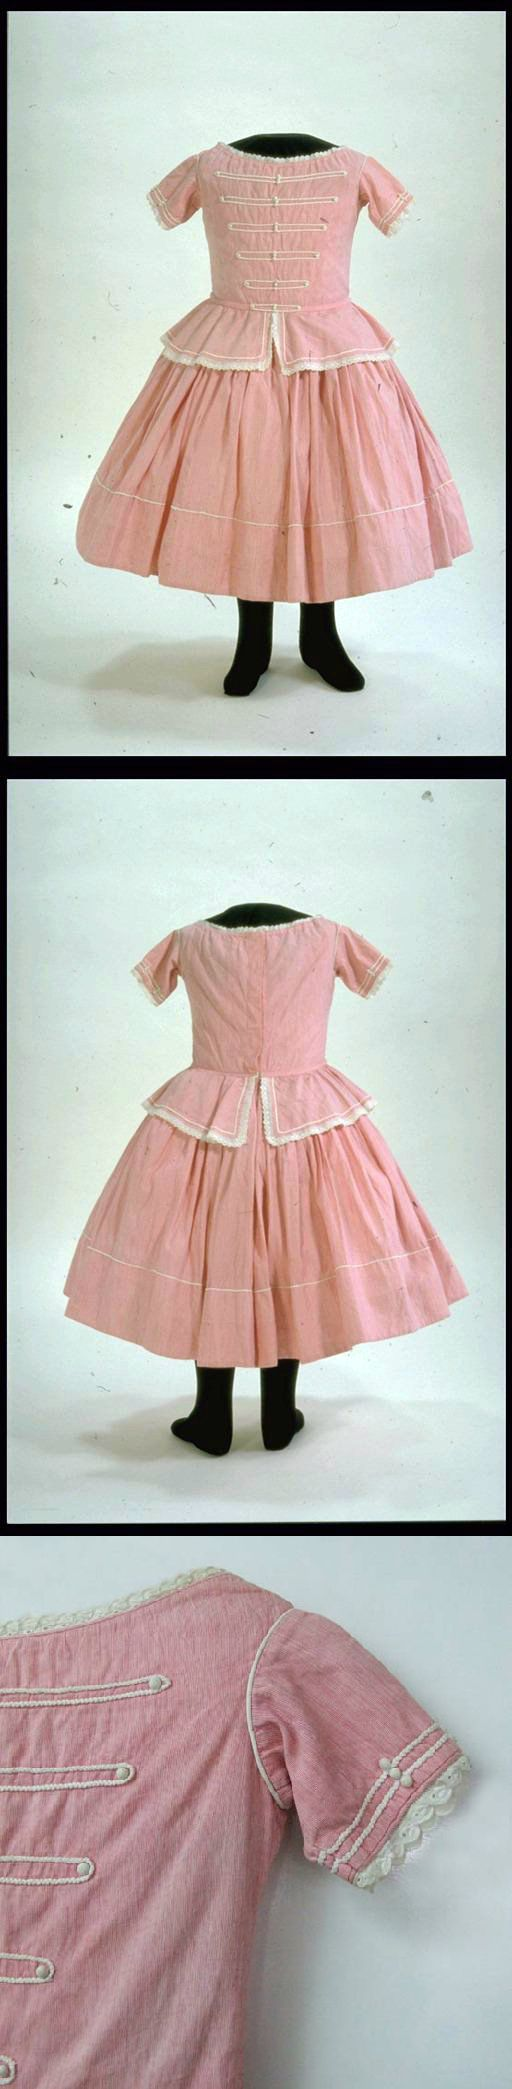 Child's Dress, 1861-70, at the Museum of London. Length 665 mm (centre front, neck to hem). See: http://collections.museumoflondon.org.uk/Online/object.aspx?objectID=object-88227&start=1&rows=1